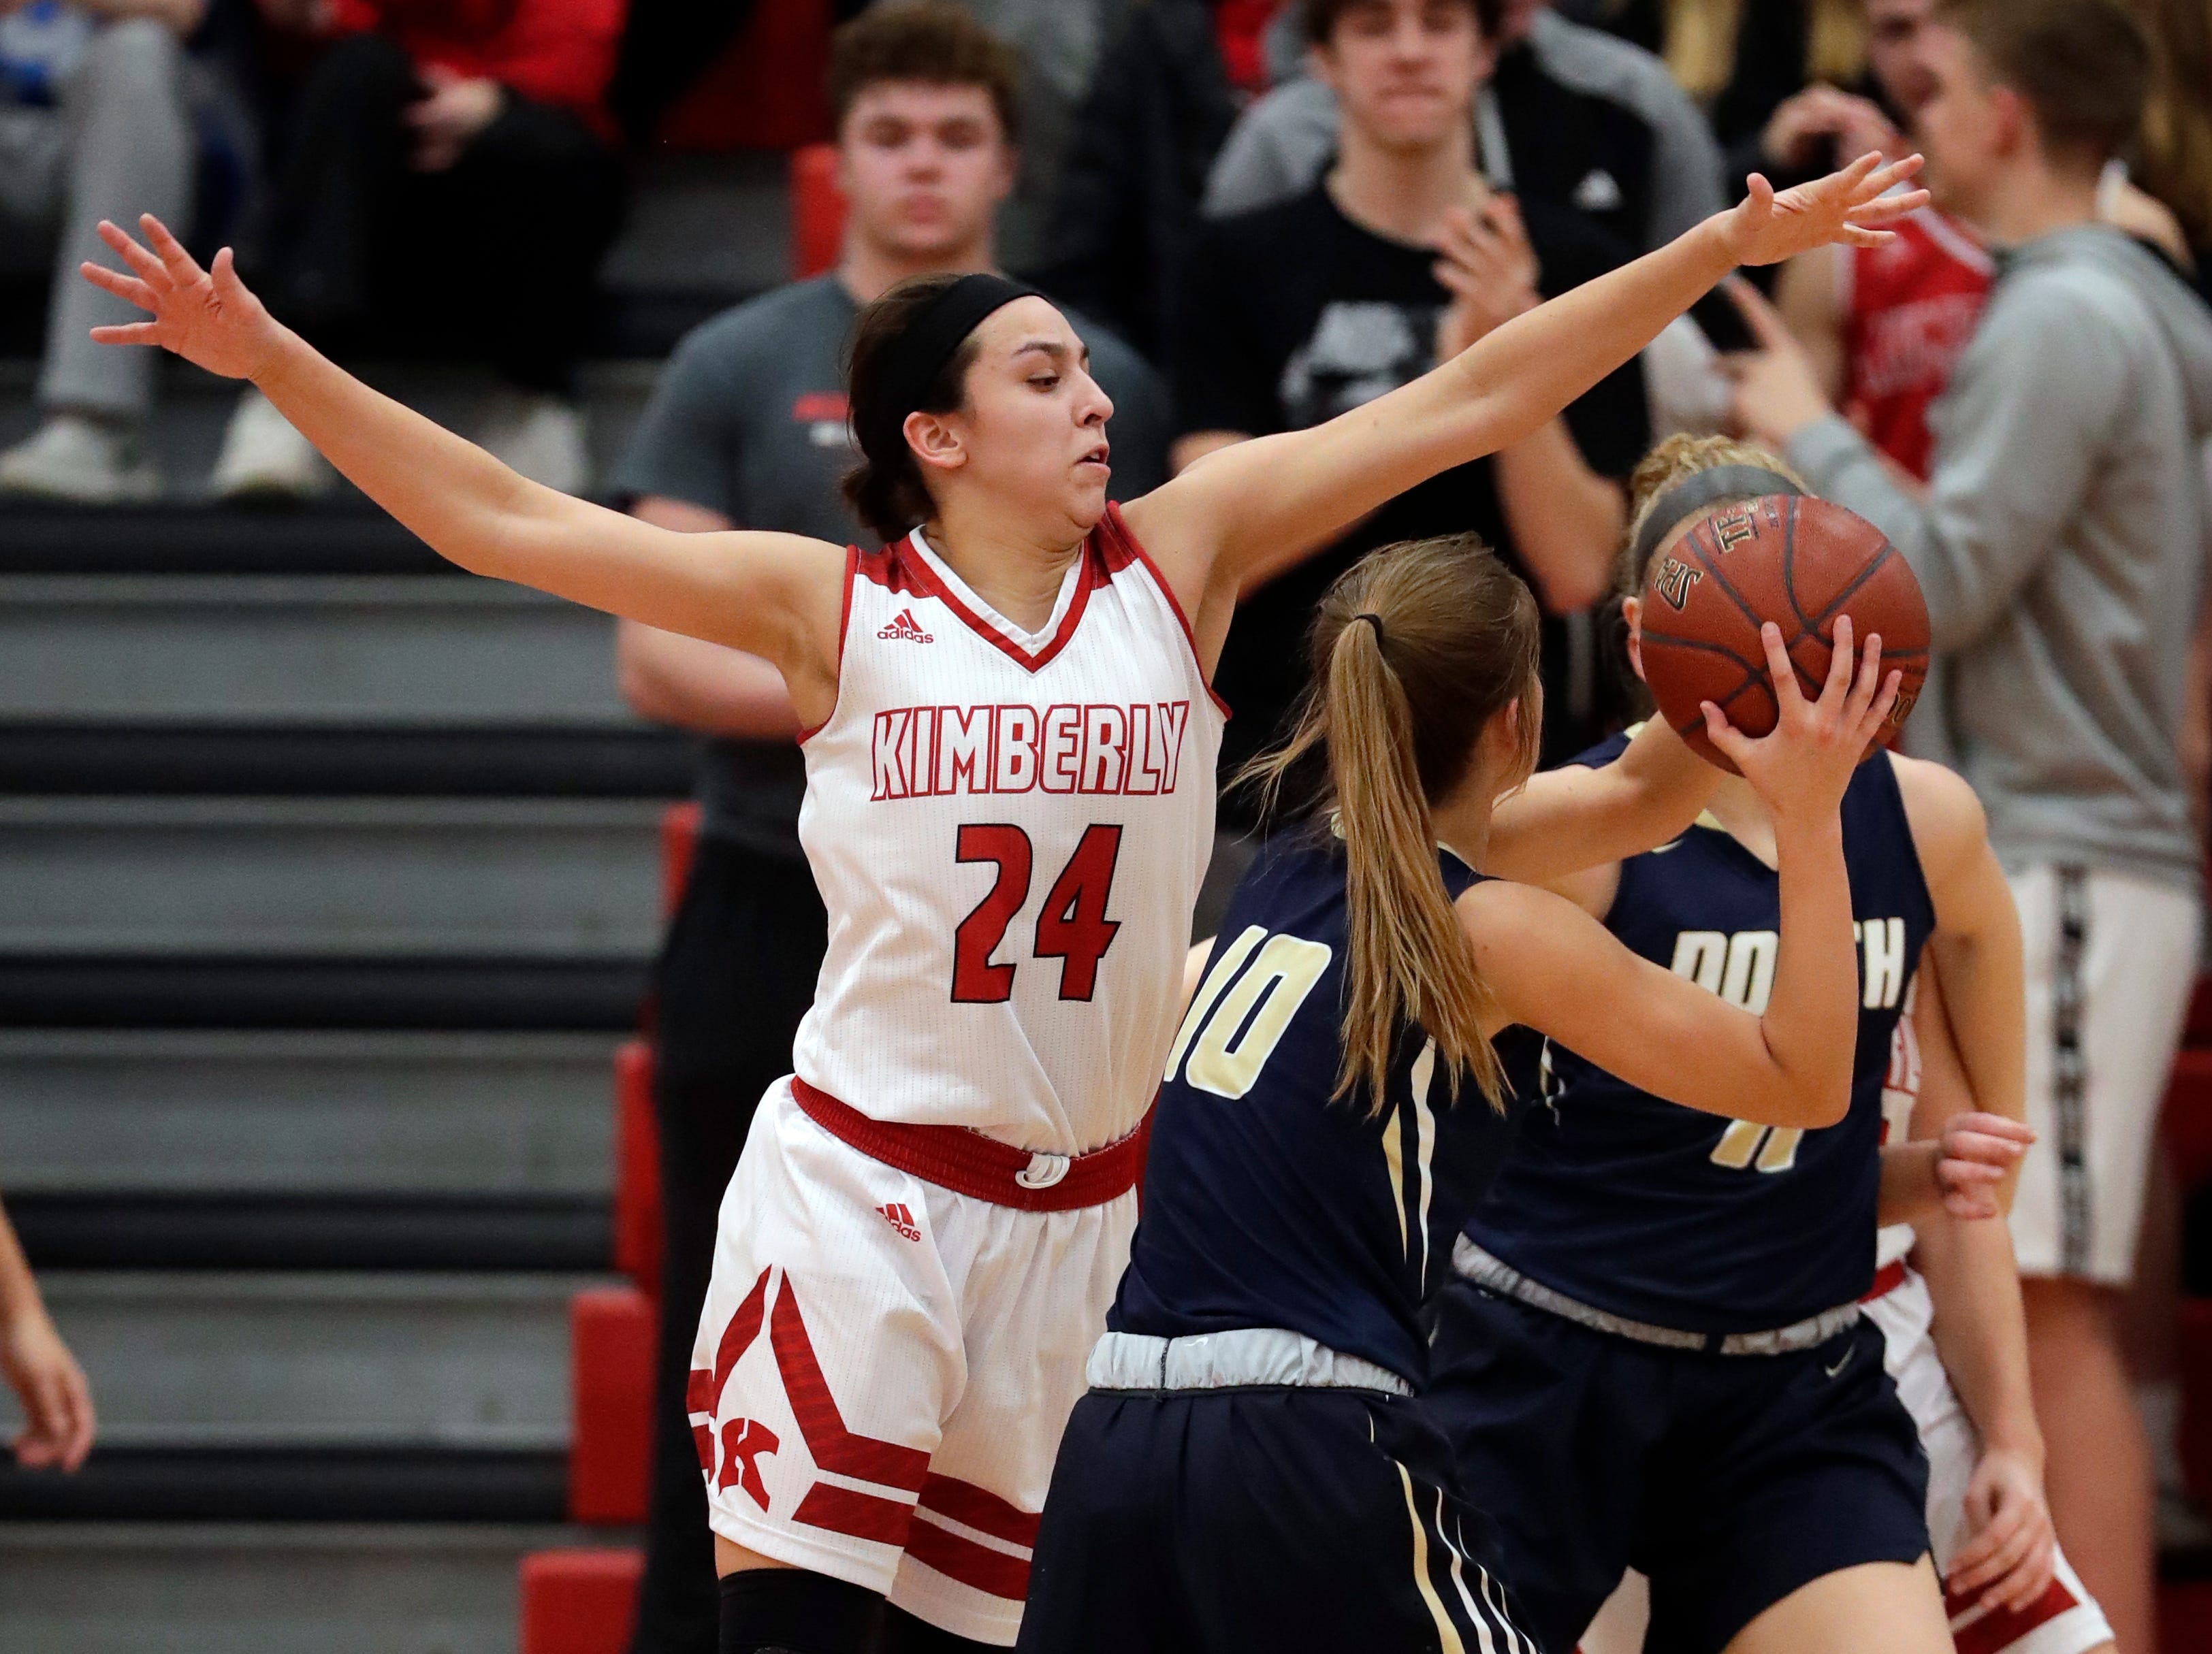 Kimberly High School's Shea Dechant (24) defends against Appleton North High School's Anna Laux (10) during their girls basketball game Monday, February 11, 2019, in Kimberly, Wis. Dan Powers/USA TODAY NETWORK-Wisconsin